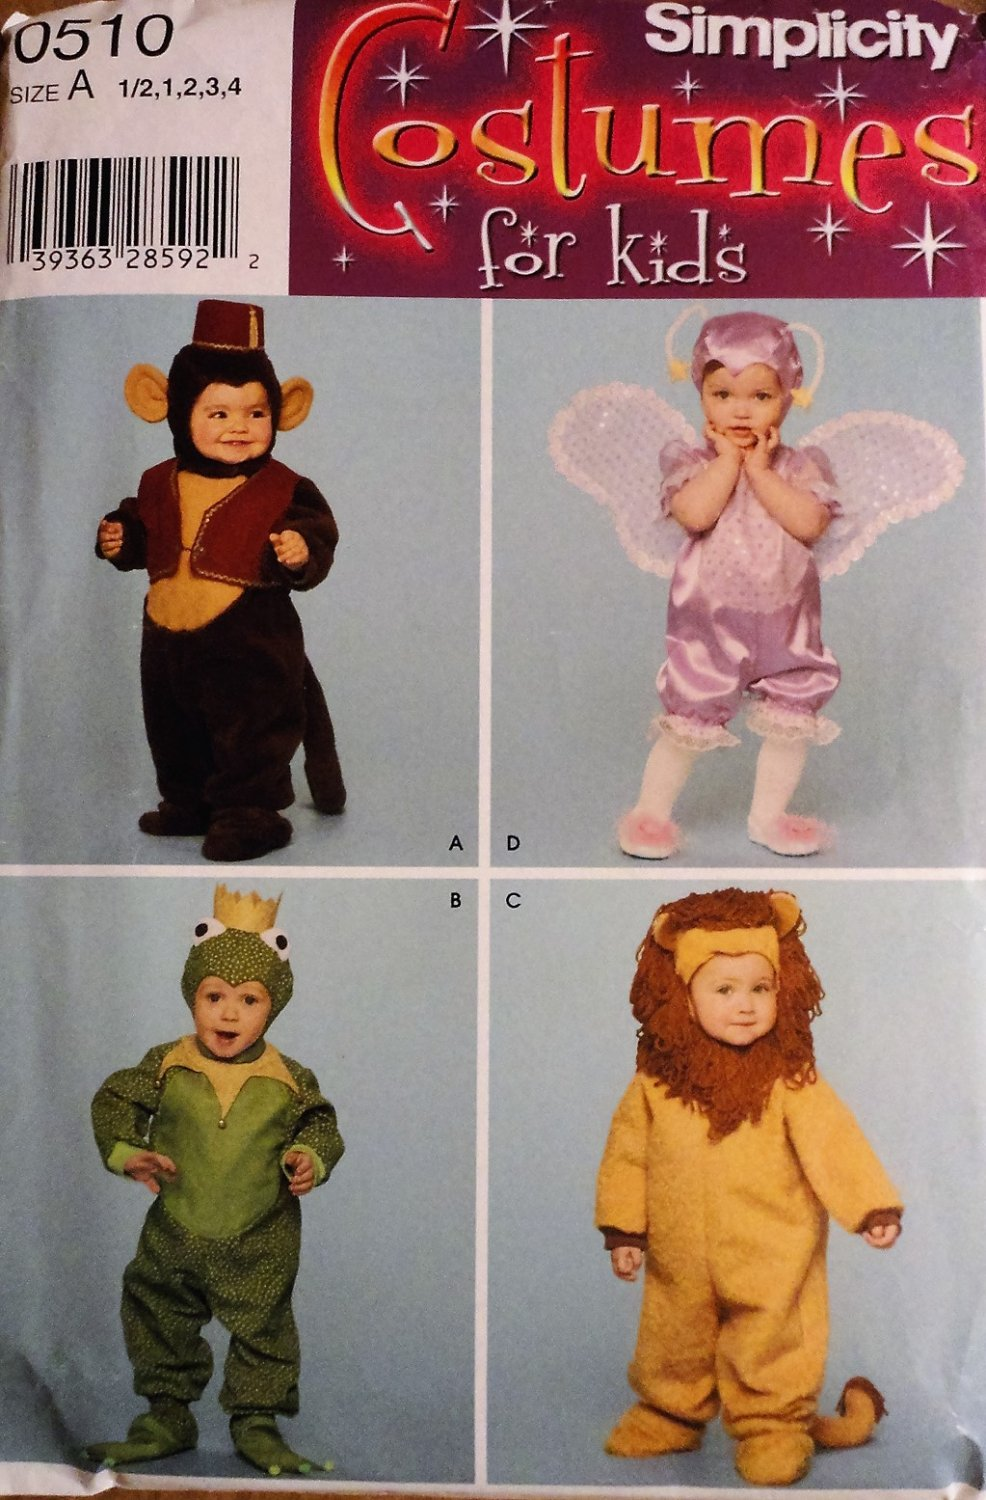 Simplicity 0510 sewing pattern Costumes forToddler Boy Girls costumes Sizes A, 6 mos, 1,2,3,4